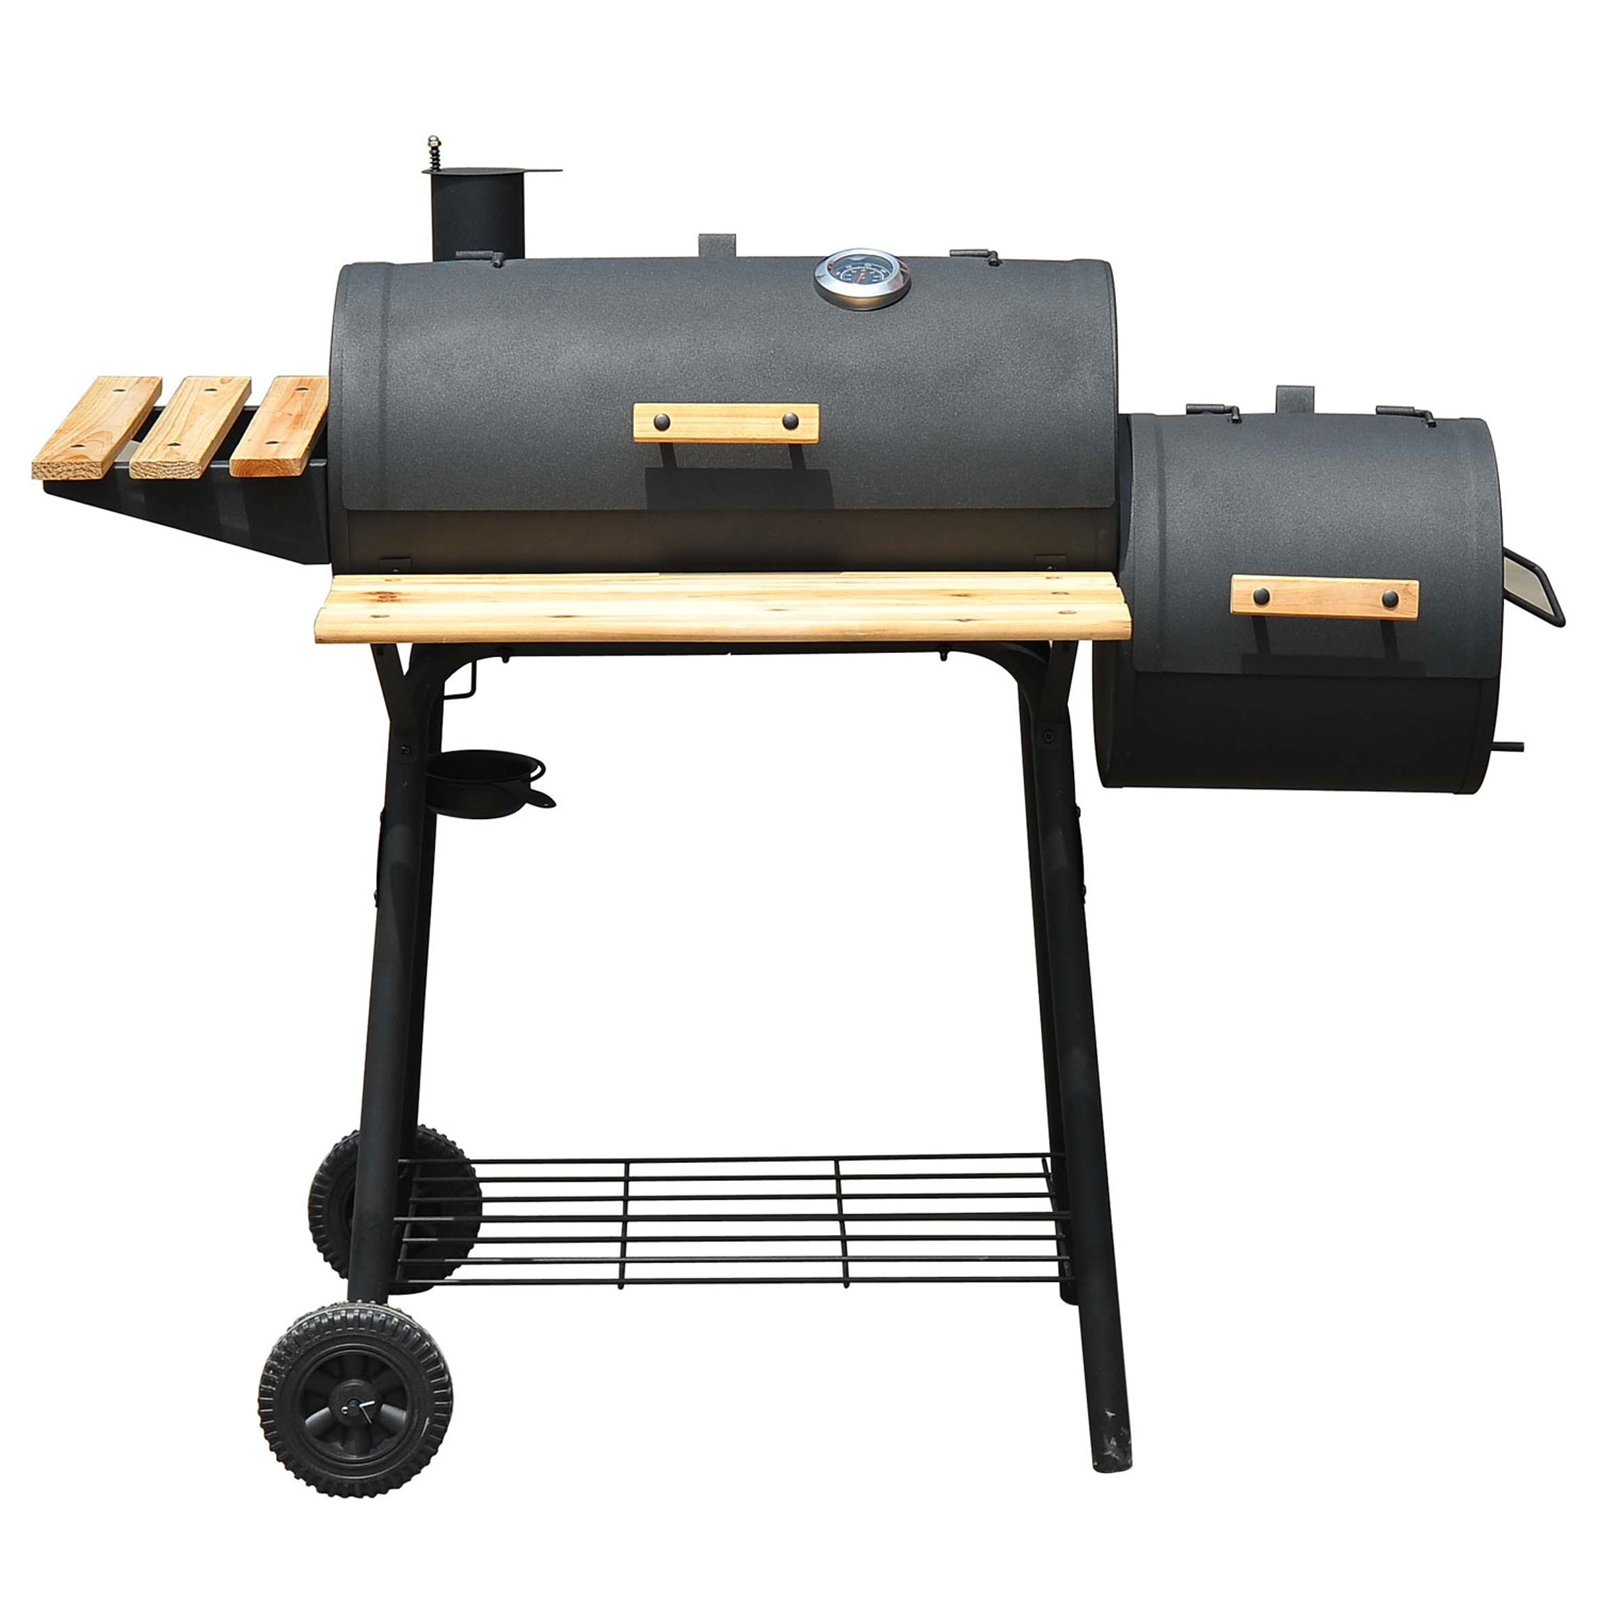 Outsunny Offset Barbeque Smoker Charcoal Grill